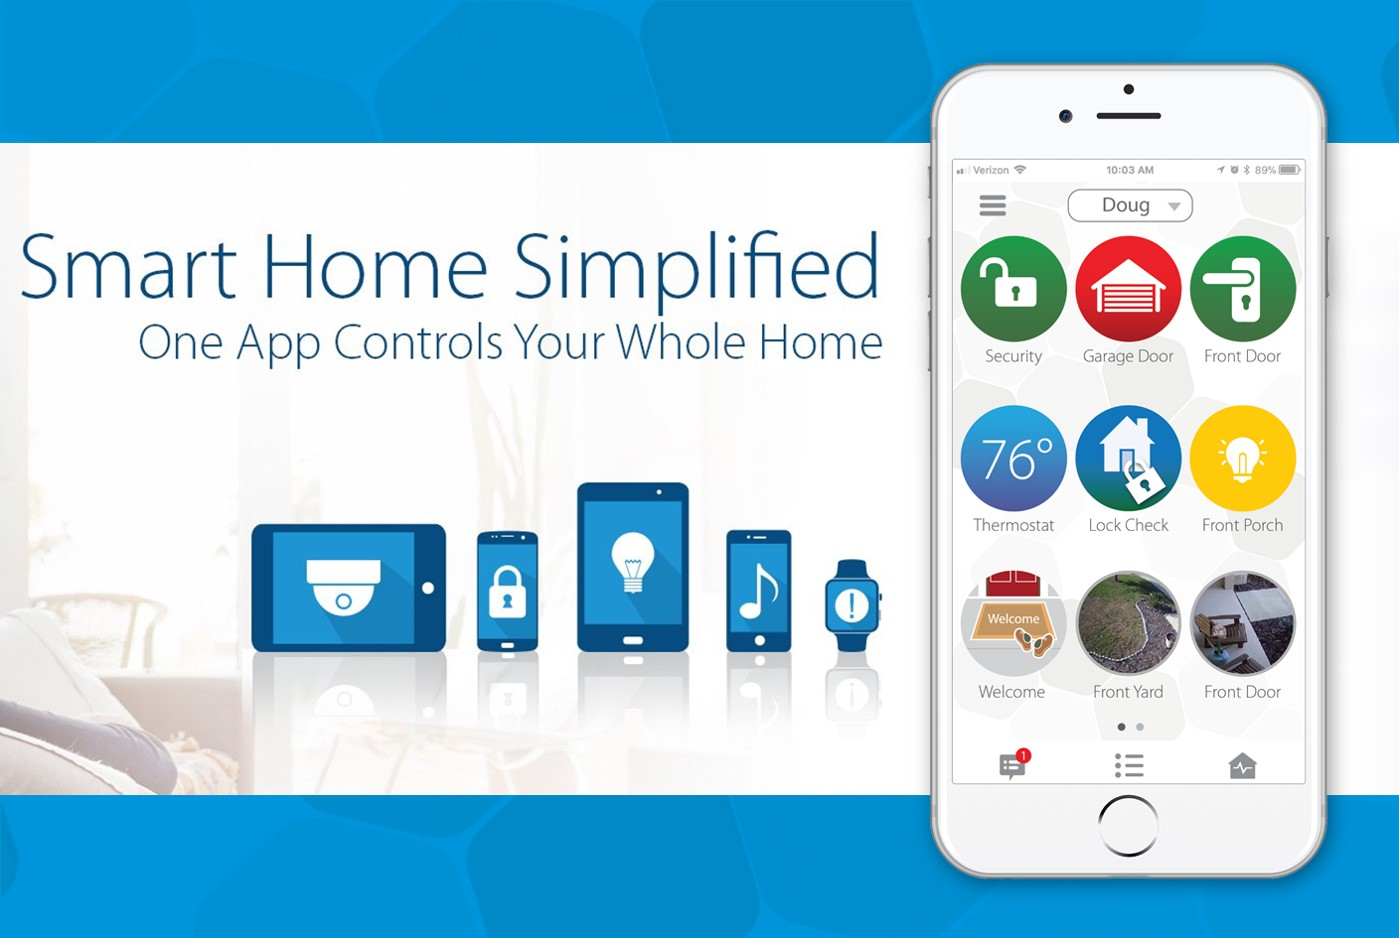 Clare Smart Home App: ClareHome v6.0 releasing soon!